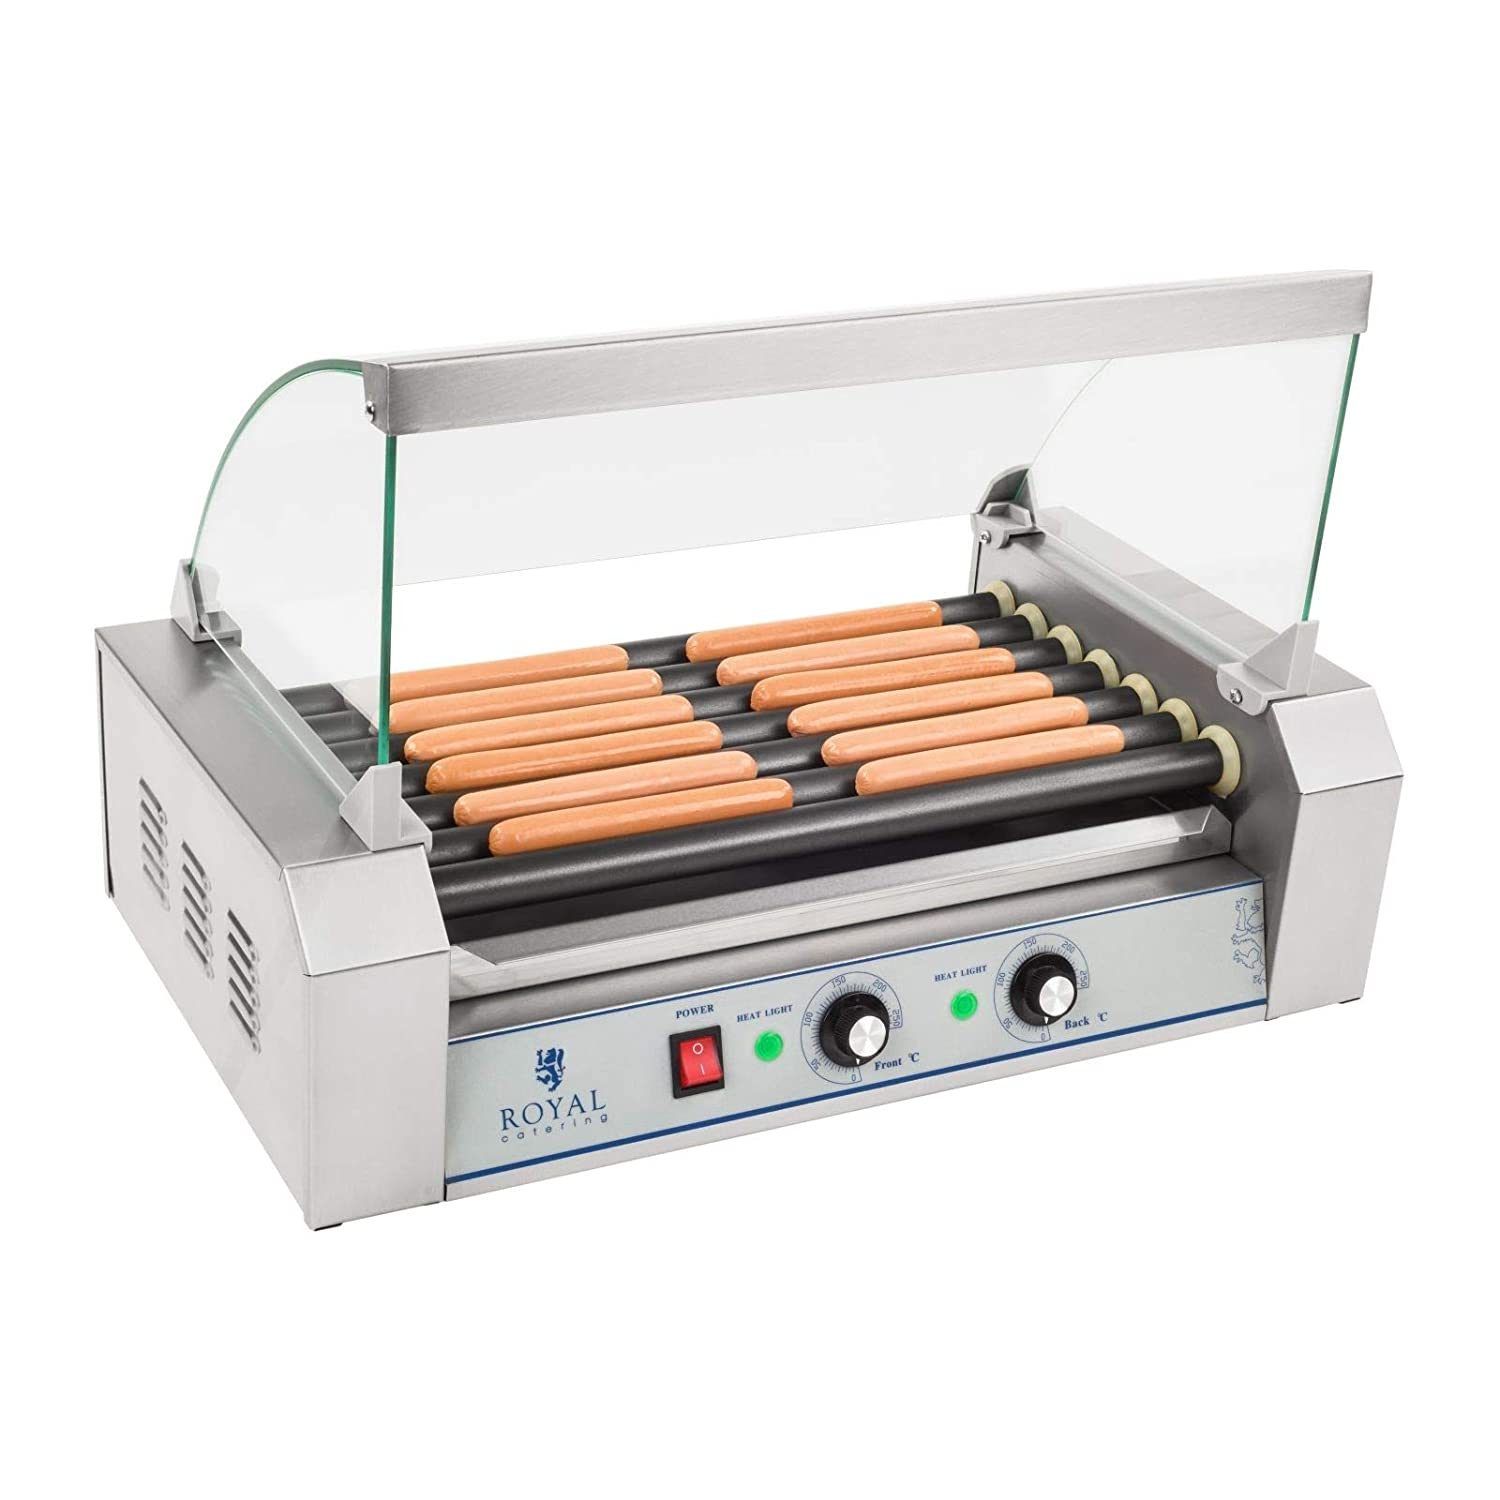 Royal Catering - RCHG-7T - 7-Roller Sausage Grill with Teflon Coating